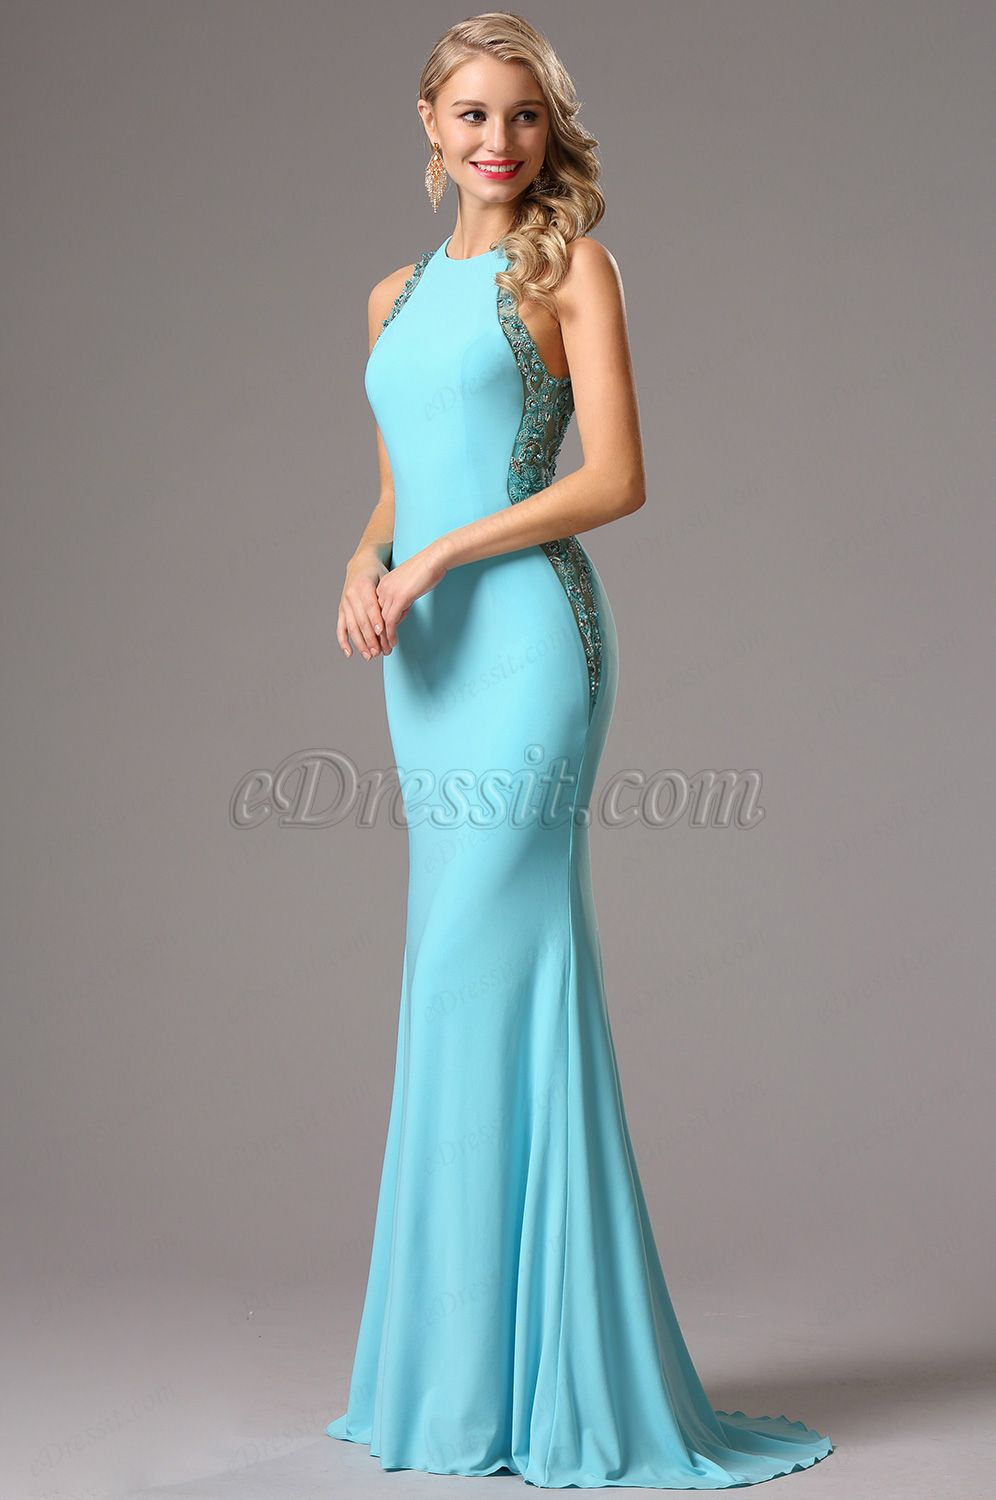 Sleeveless light blue formal gown with beaded detailed back